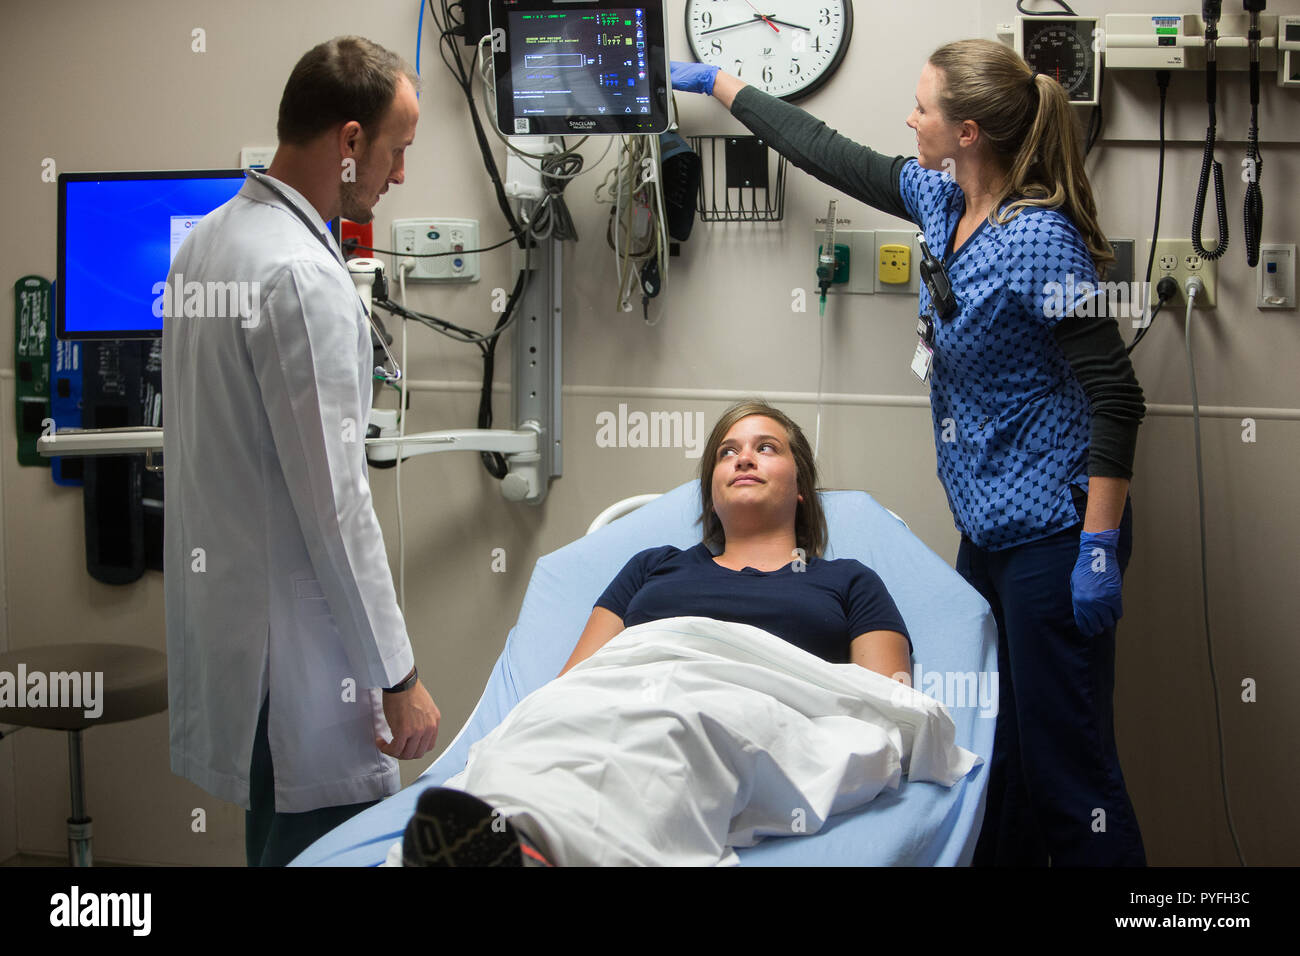 Emergency Room Doctor And Nurse With Patient At Hospital